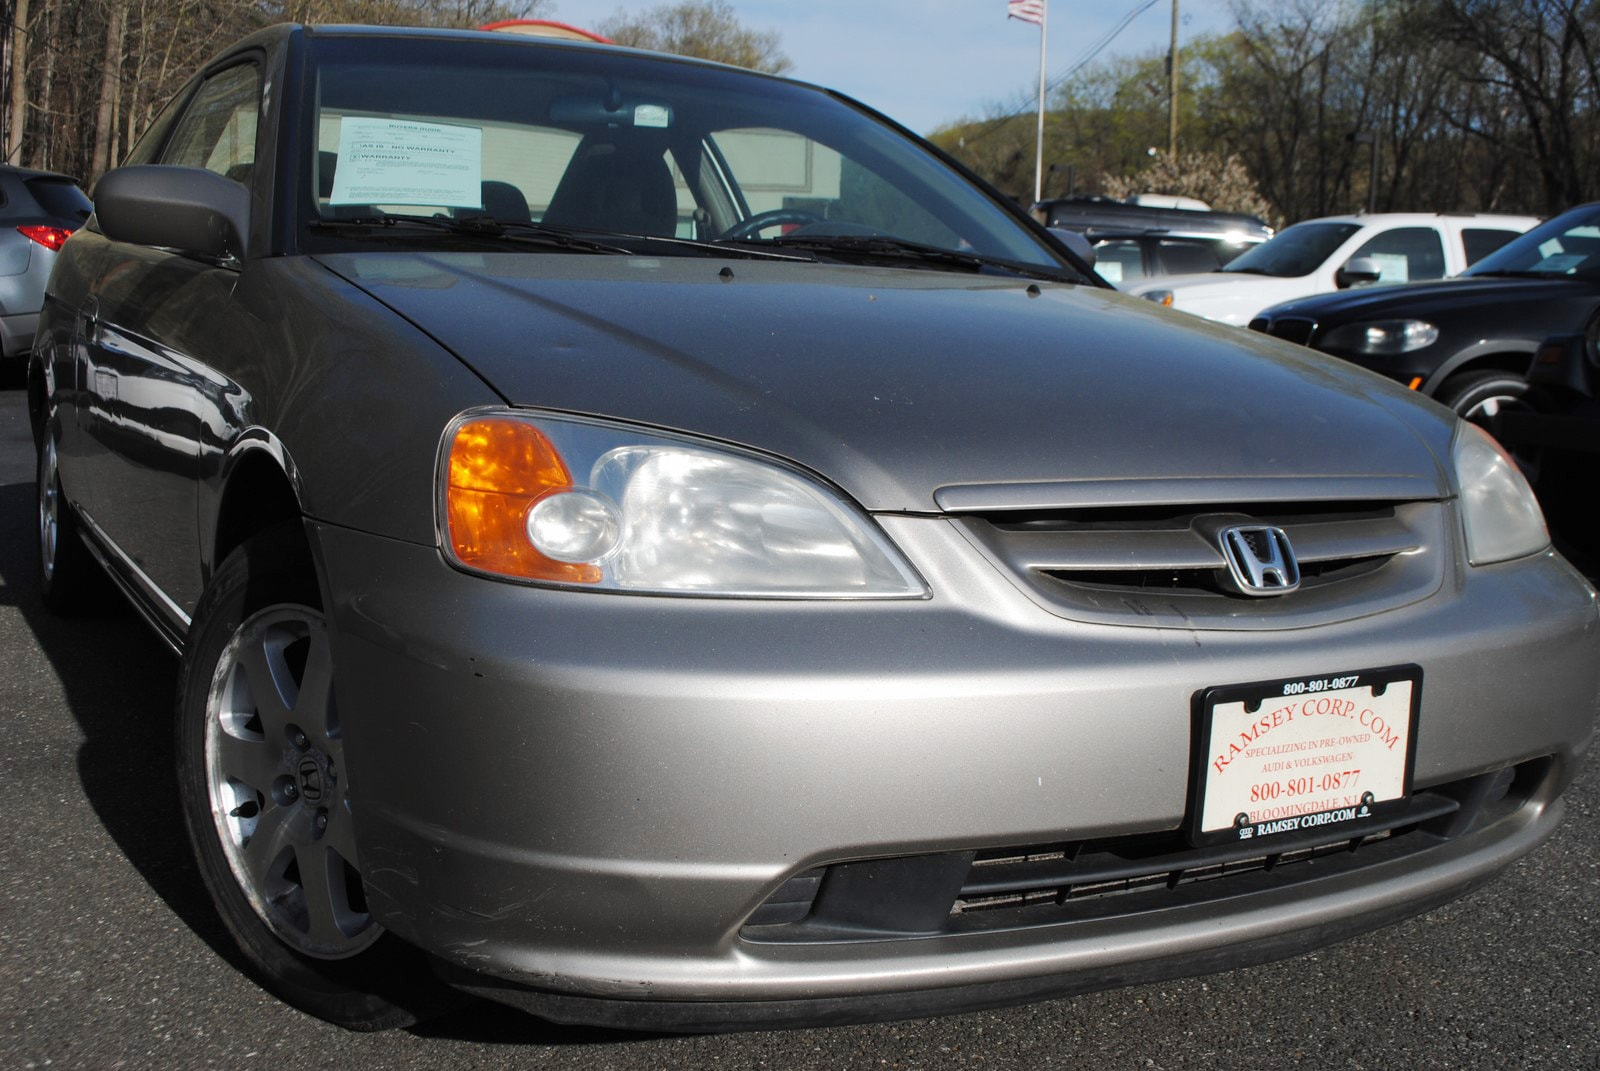 used 2003 honda civic for sale west milford nj. Black Bedroom Furniture Sets. Home Design Ideas